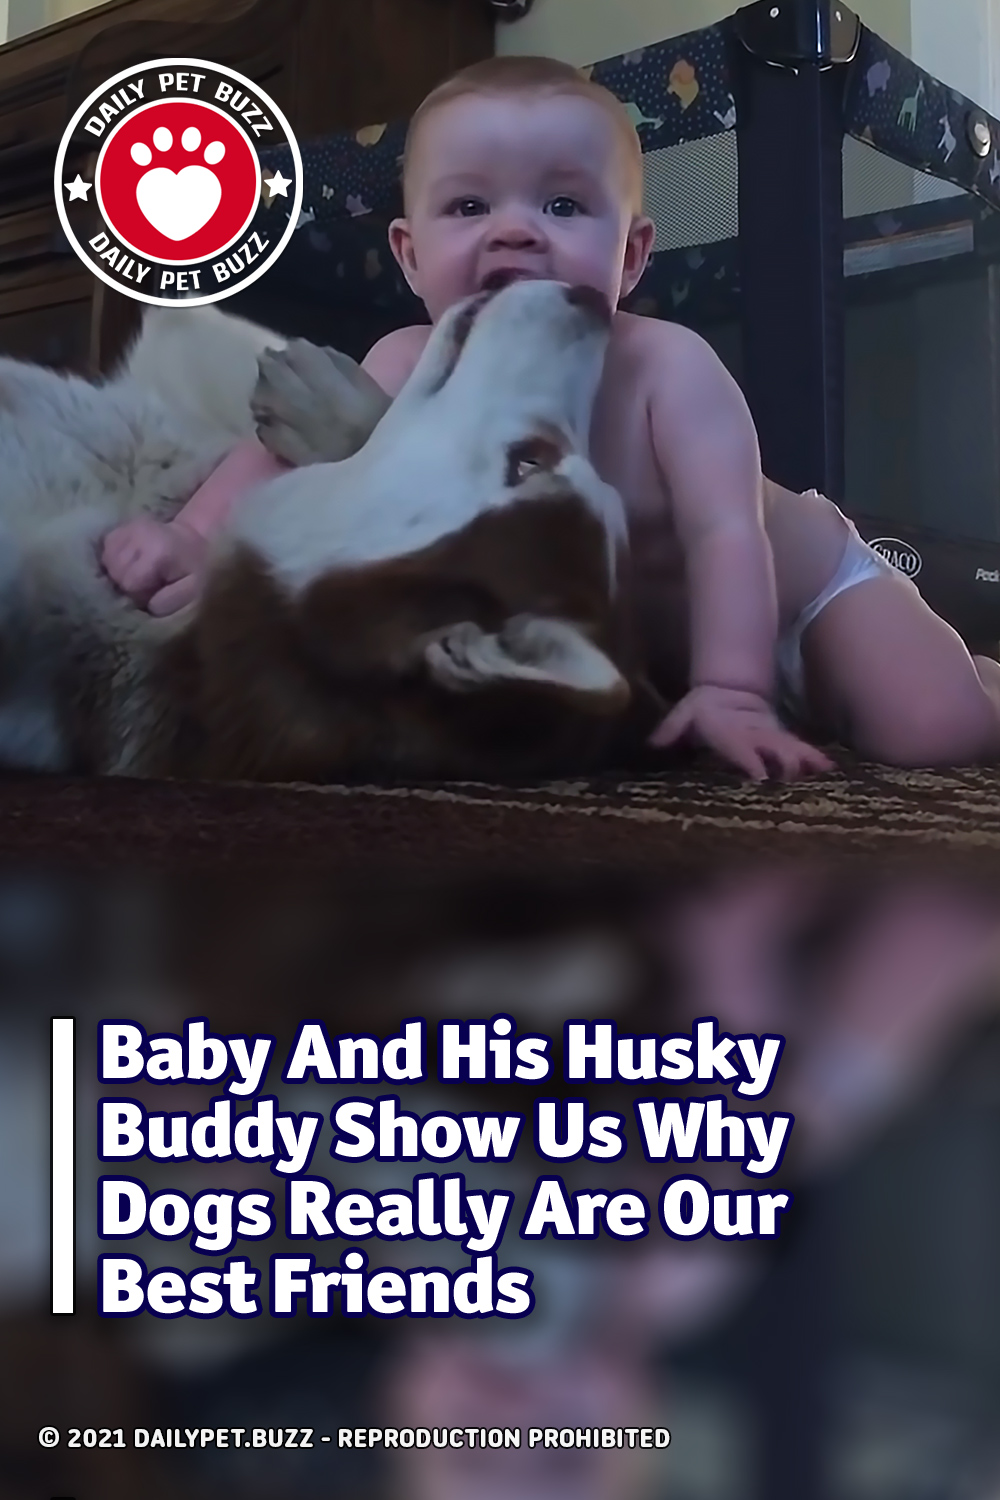 Baby And His Husky Buddy Show Us Why Dogs Really Are Our Best Friends